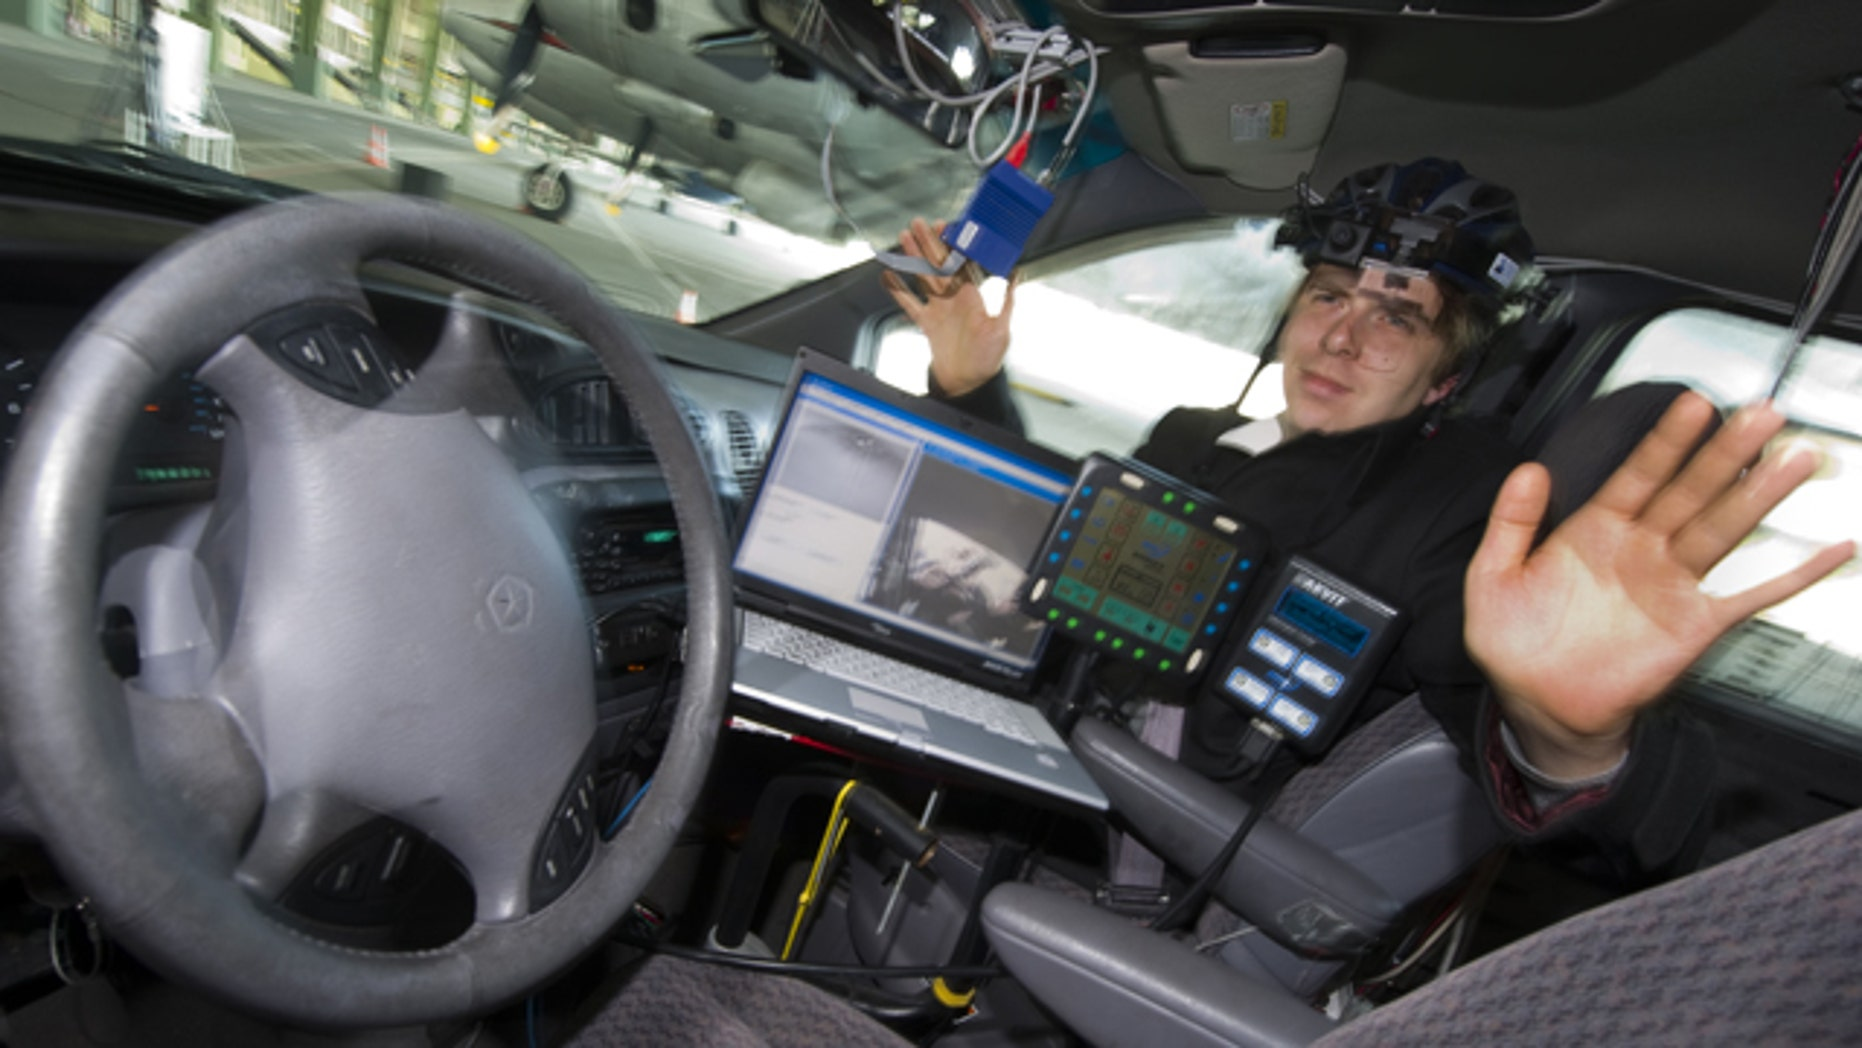 """Scientist David Latotzky of Freie Universitaet Berlin sits on the passenger seat of a car turning the steering wheel with his eye movements in Berlin, Friday, April 23, 2010. The scientists developed the software """"EyeDriver"""" to steer their car """"Spirit of Berlin"""" just by movement of the eyes."""